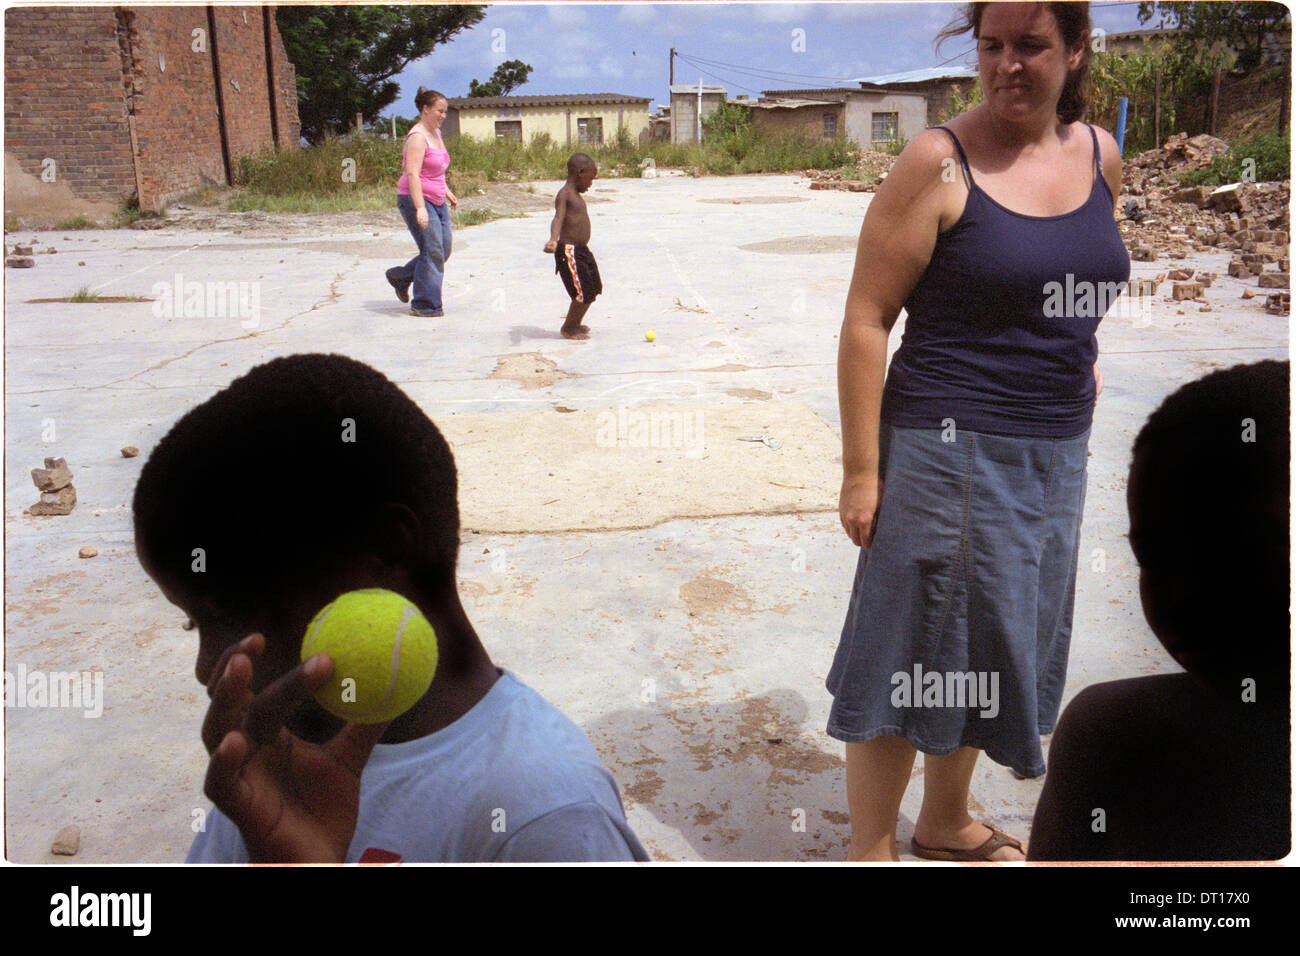 ipjr11041933 urban youth, programs, shelters western volunteer plays ball with children in kwamashu, kwazulu-natal south africa - Stock Image